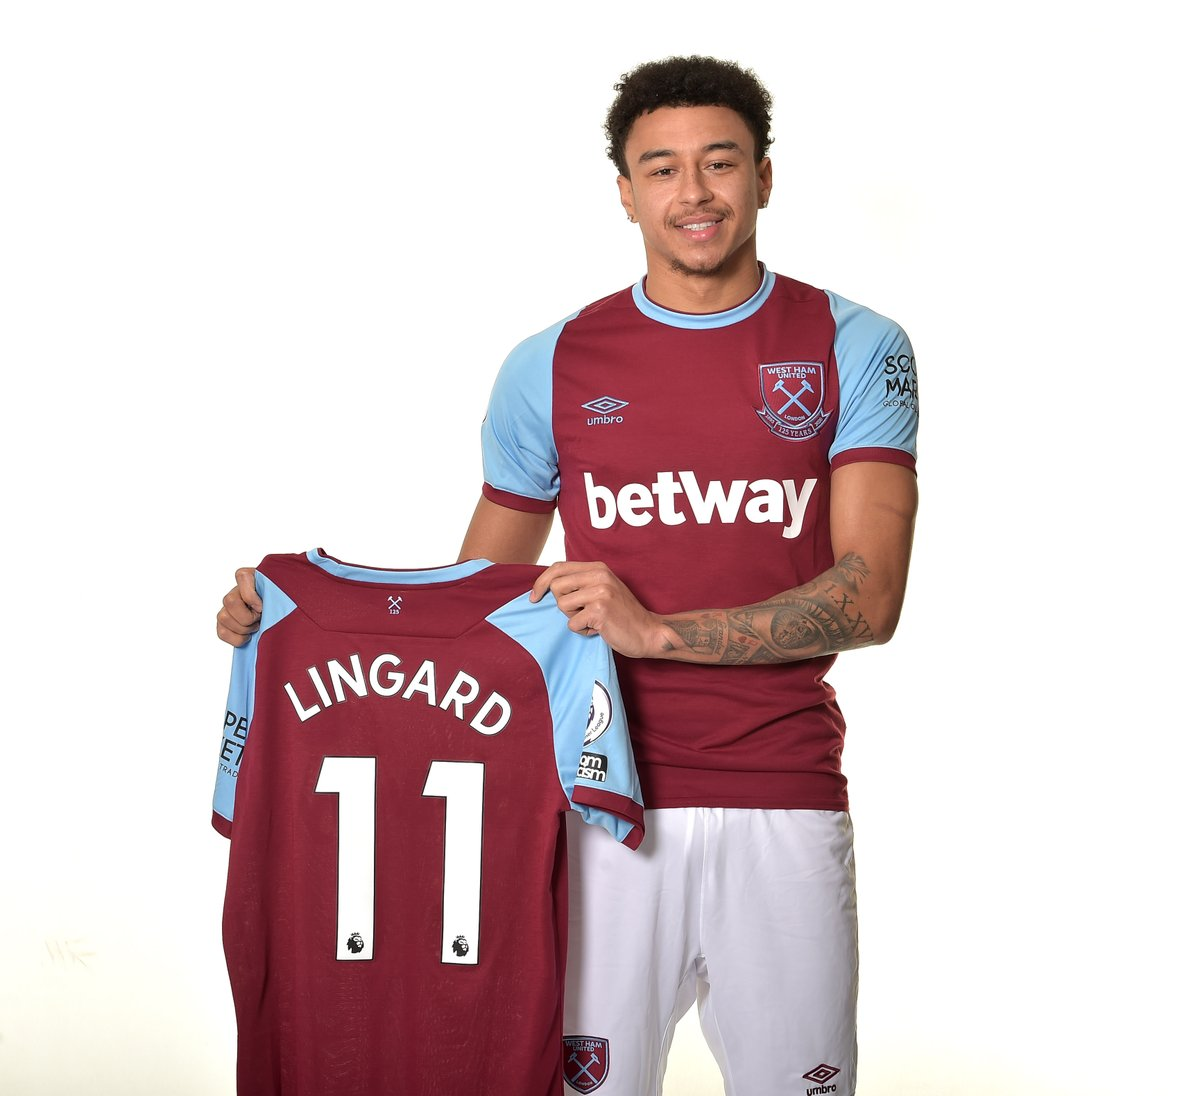 Who wants a signed @JesseLingard home shirt?! To be in with a chance:  ❤️ Like this tweet 🔃 RT ✍️ Tag a friend